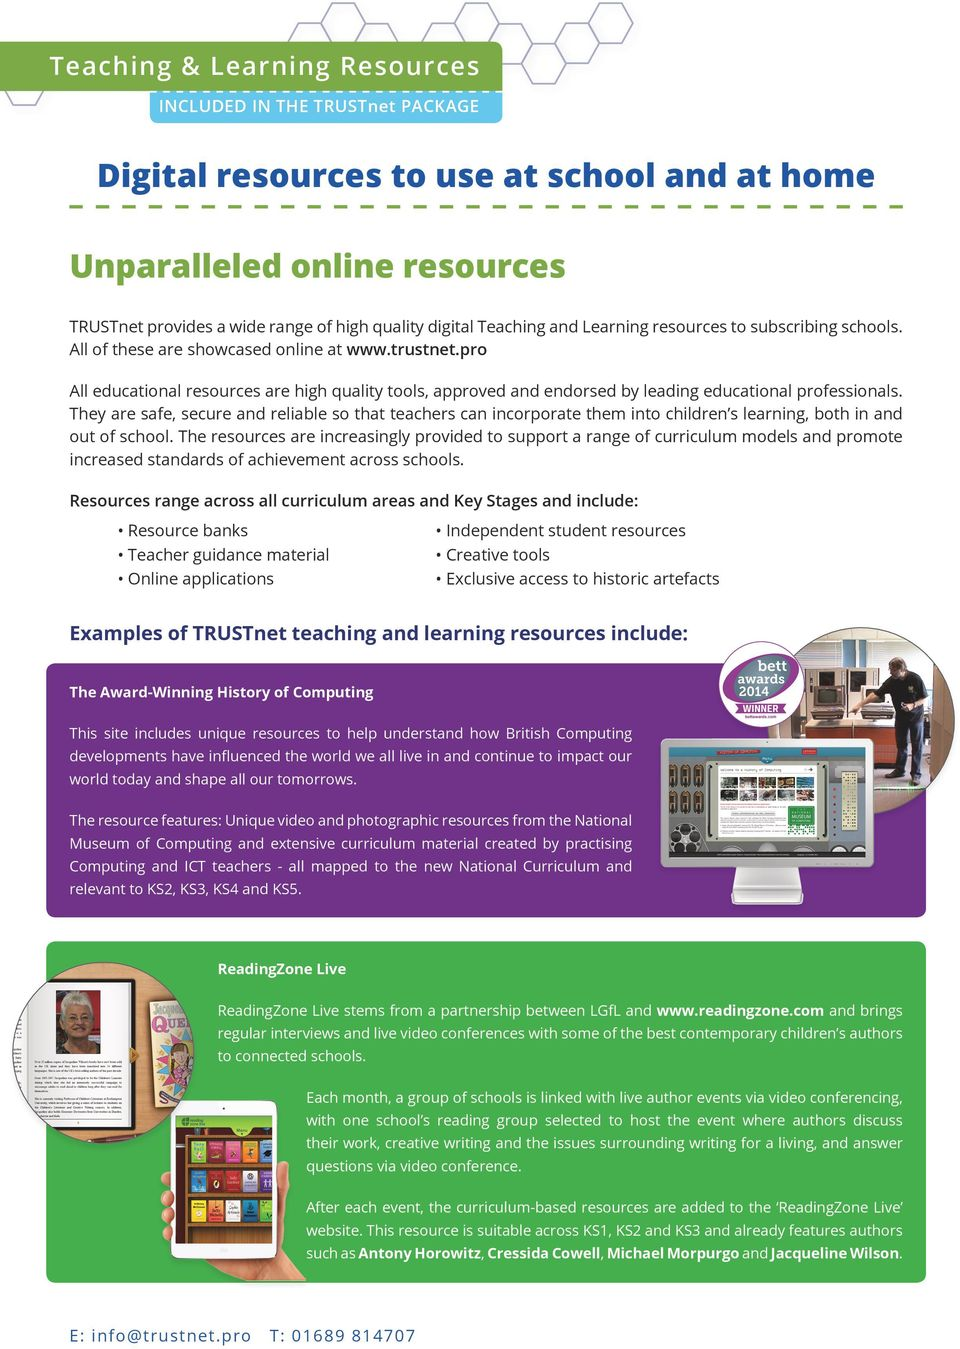 pro All educational resources are high quality tools, approved and endorsed by leading educational professionals.